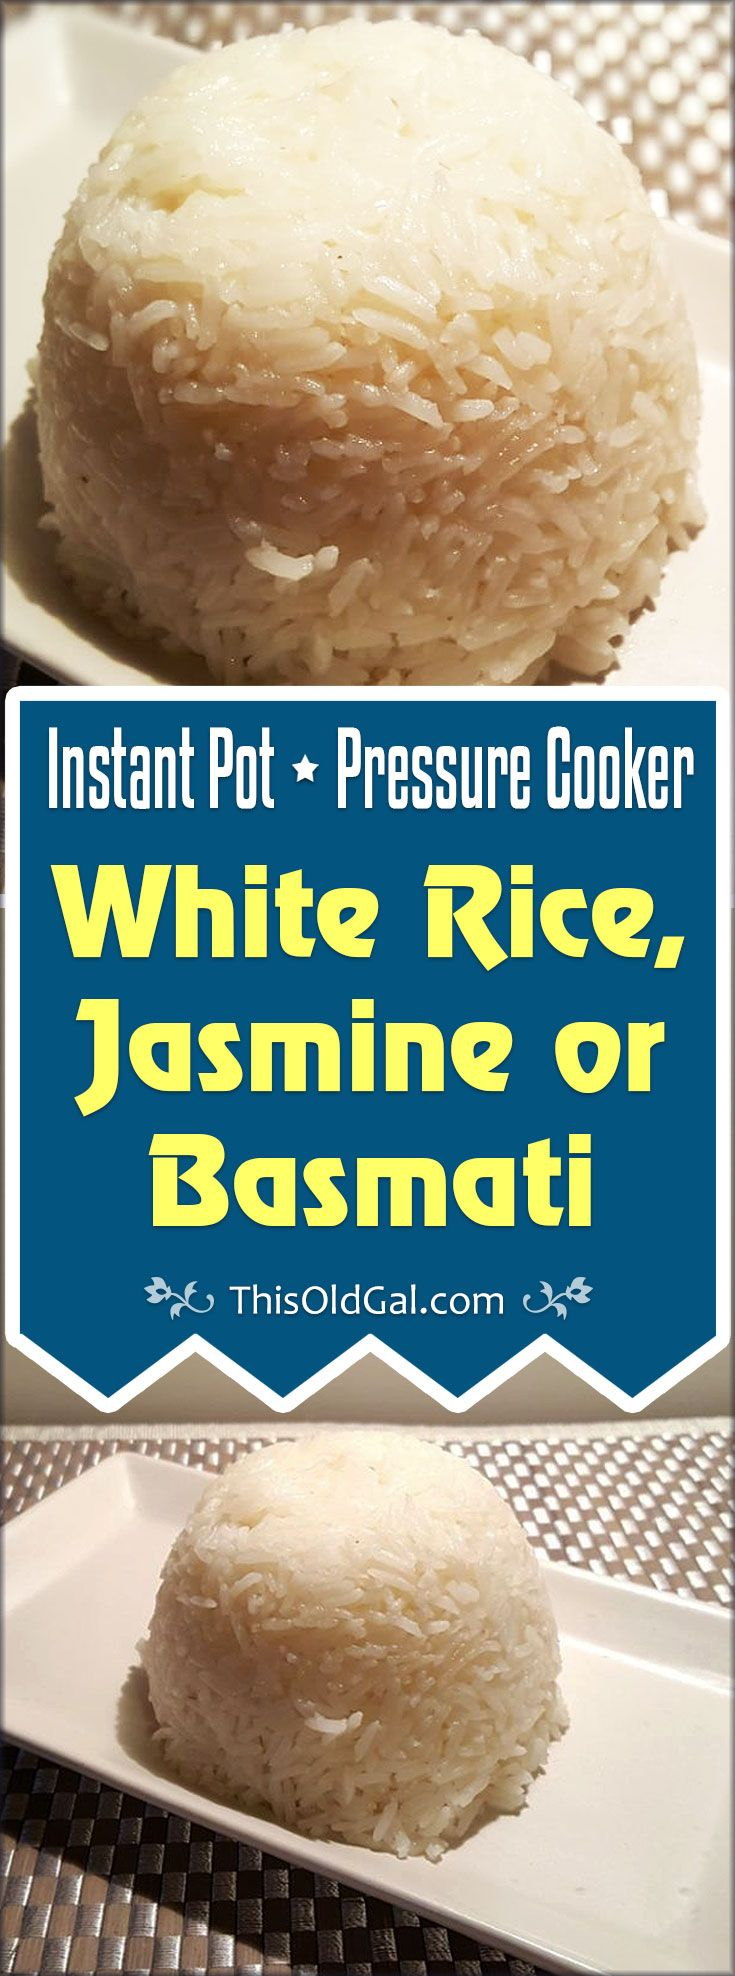 Pressure Cooker White Rice can be made with water or broth and will be on your table in less than 15 minutes with your Pressure Cooker. #ricecookermeals